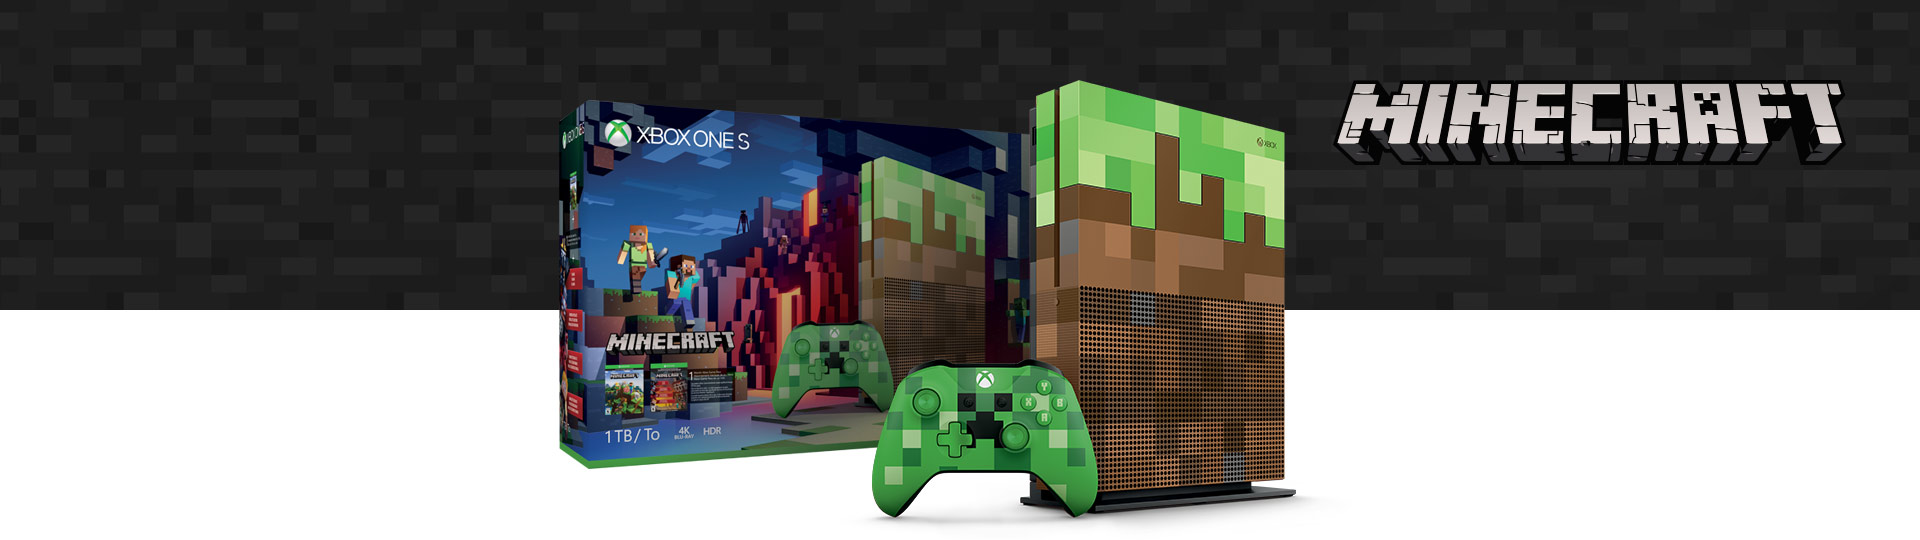 Xbox One S Minecraft Limited Edition Bundle TB Xbox - Minecraft edition spiele